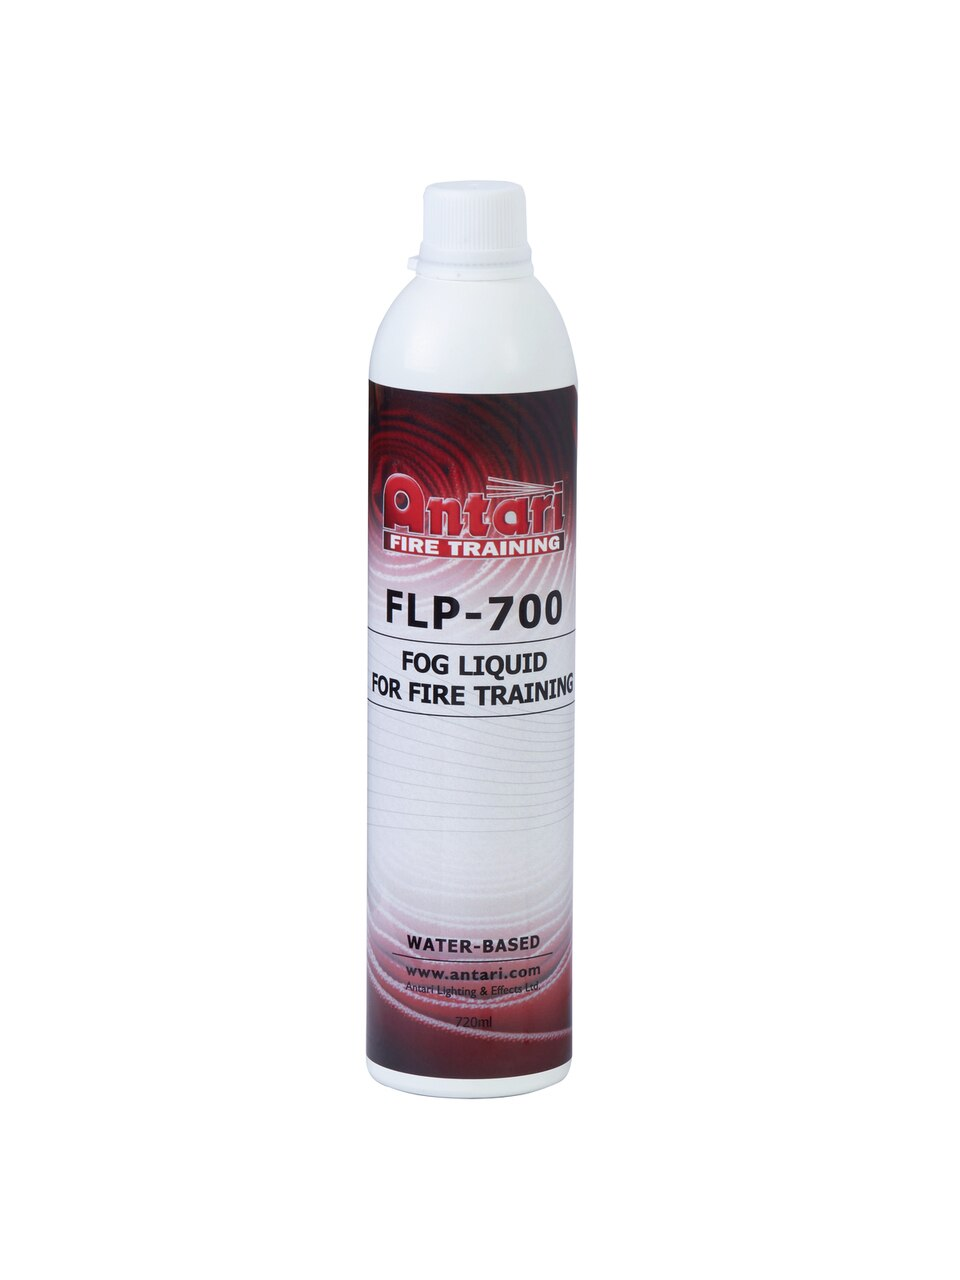 FLP-700 Fire Training Fog Fluid